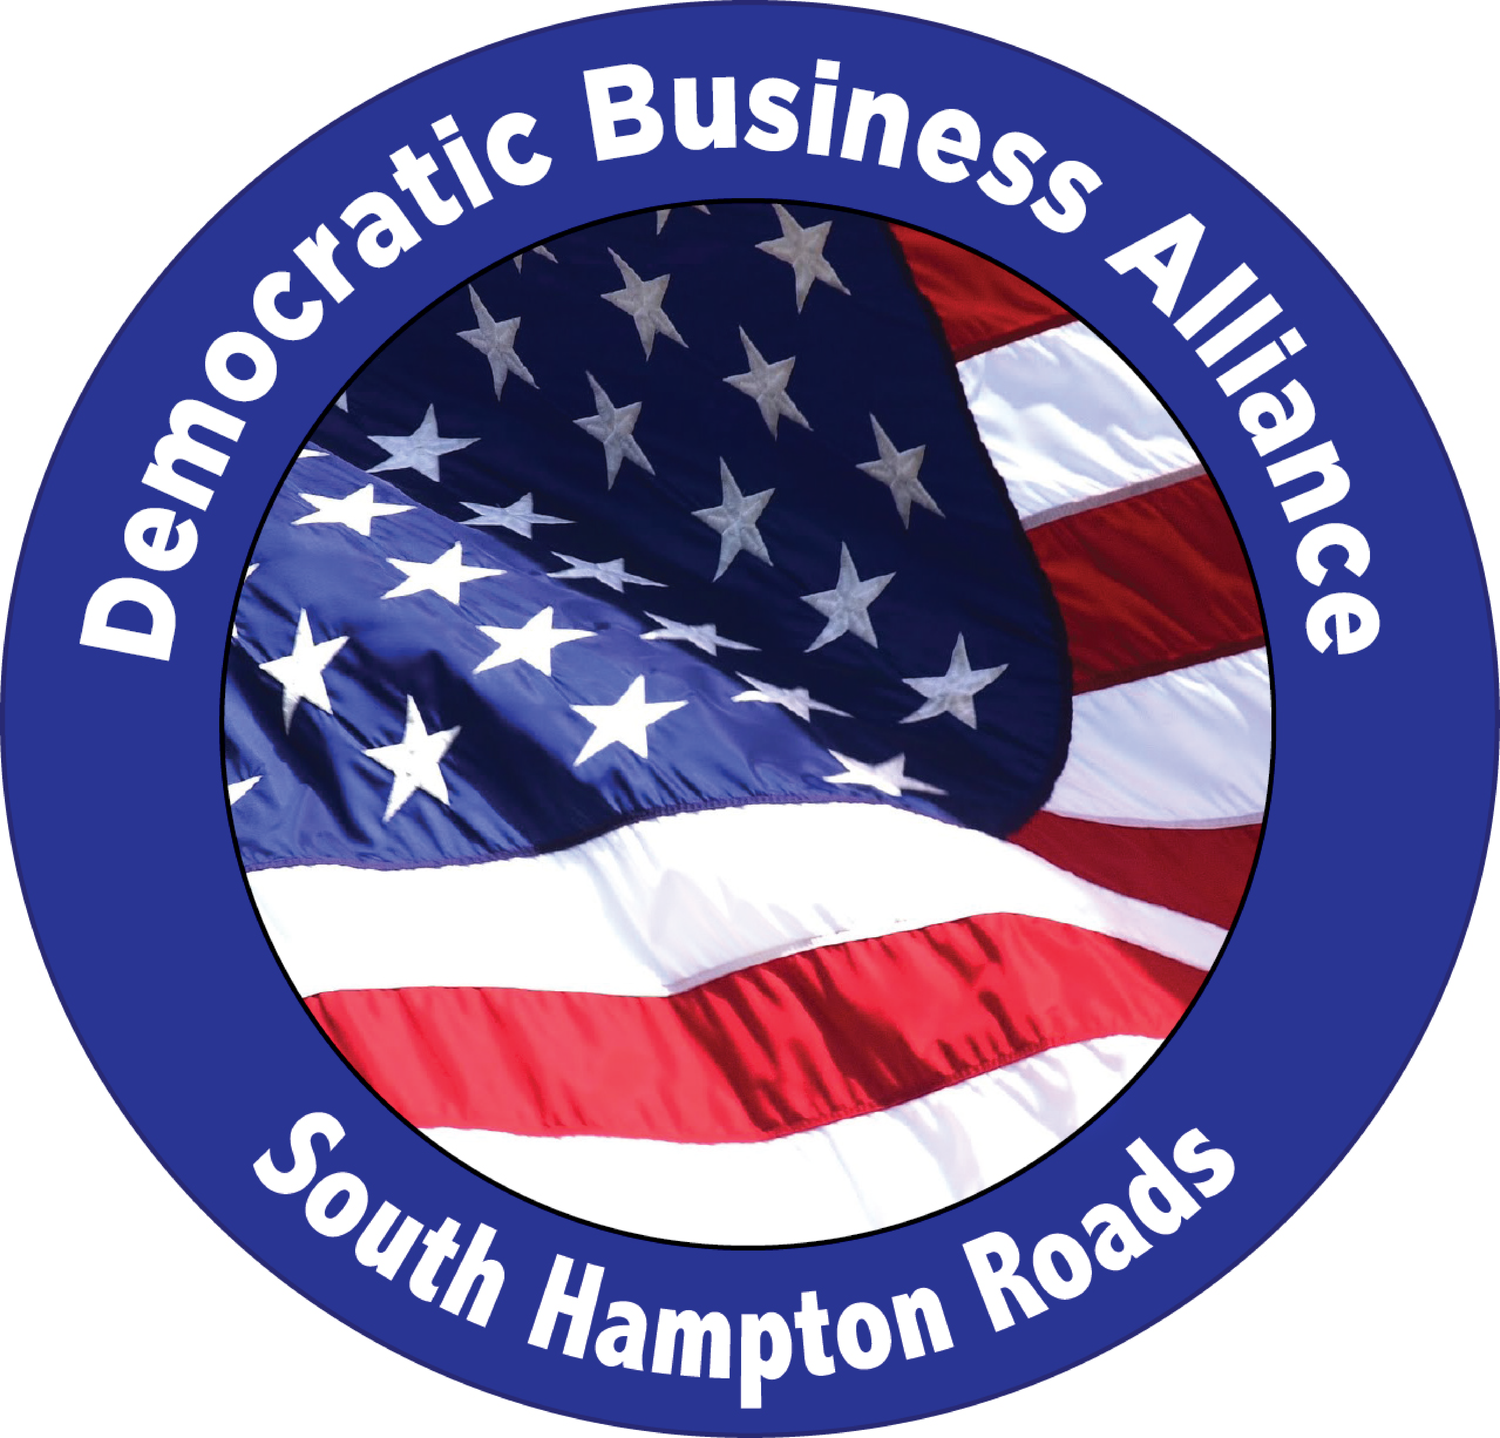 Democratic Business Alliance of South Hampton Roads